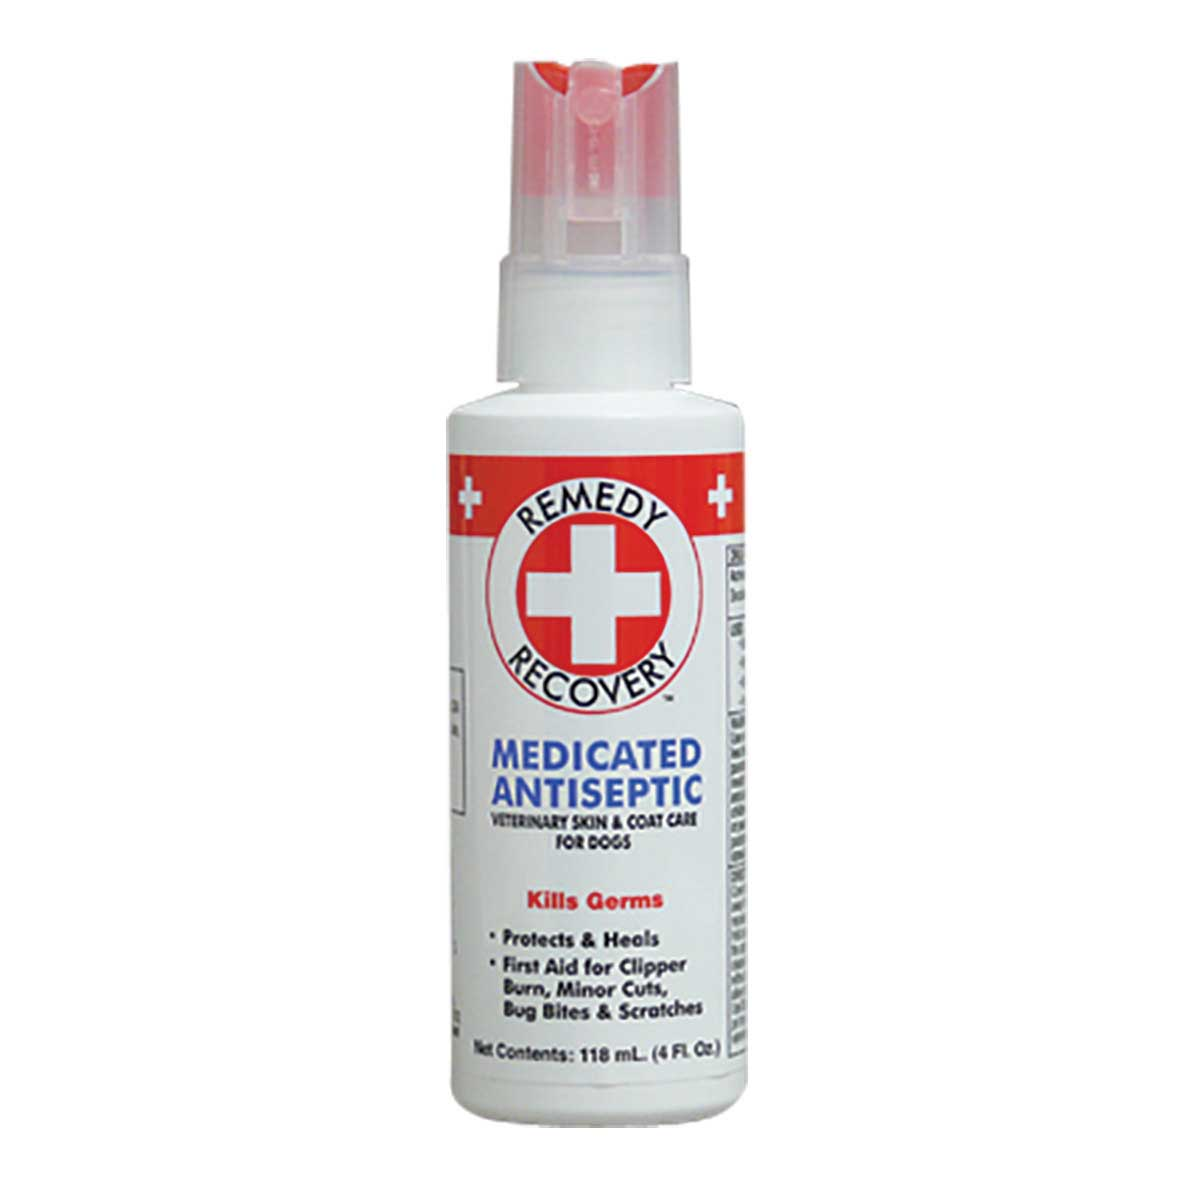 Remedy + Recovery Medicated Antiseptic Spray 4 ounce